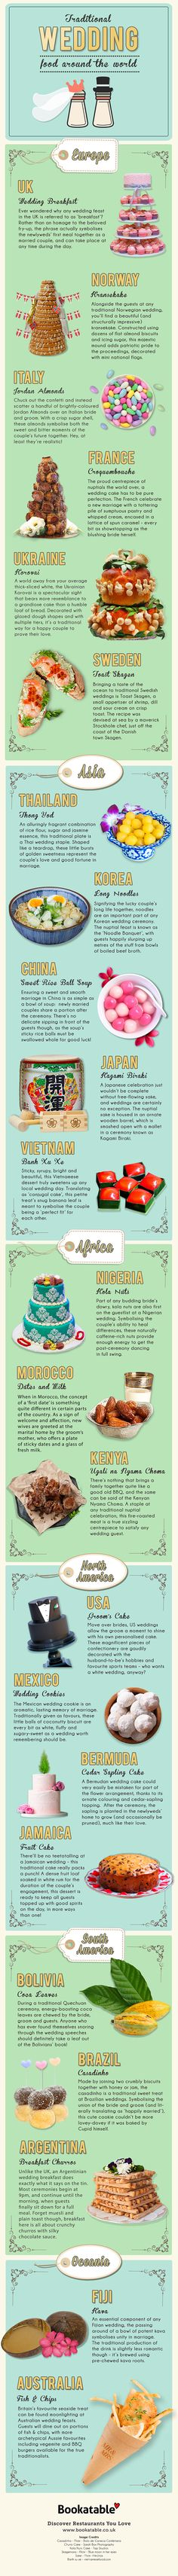 Traditional Wedding Food from Around the World #Infographic #Wedding #Food